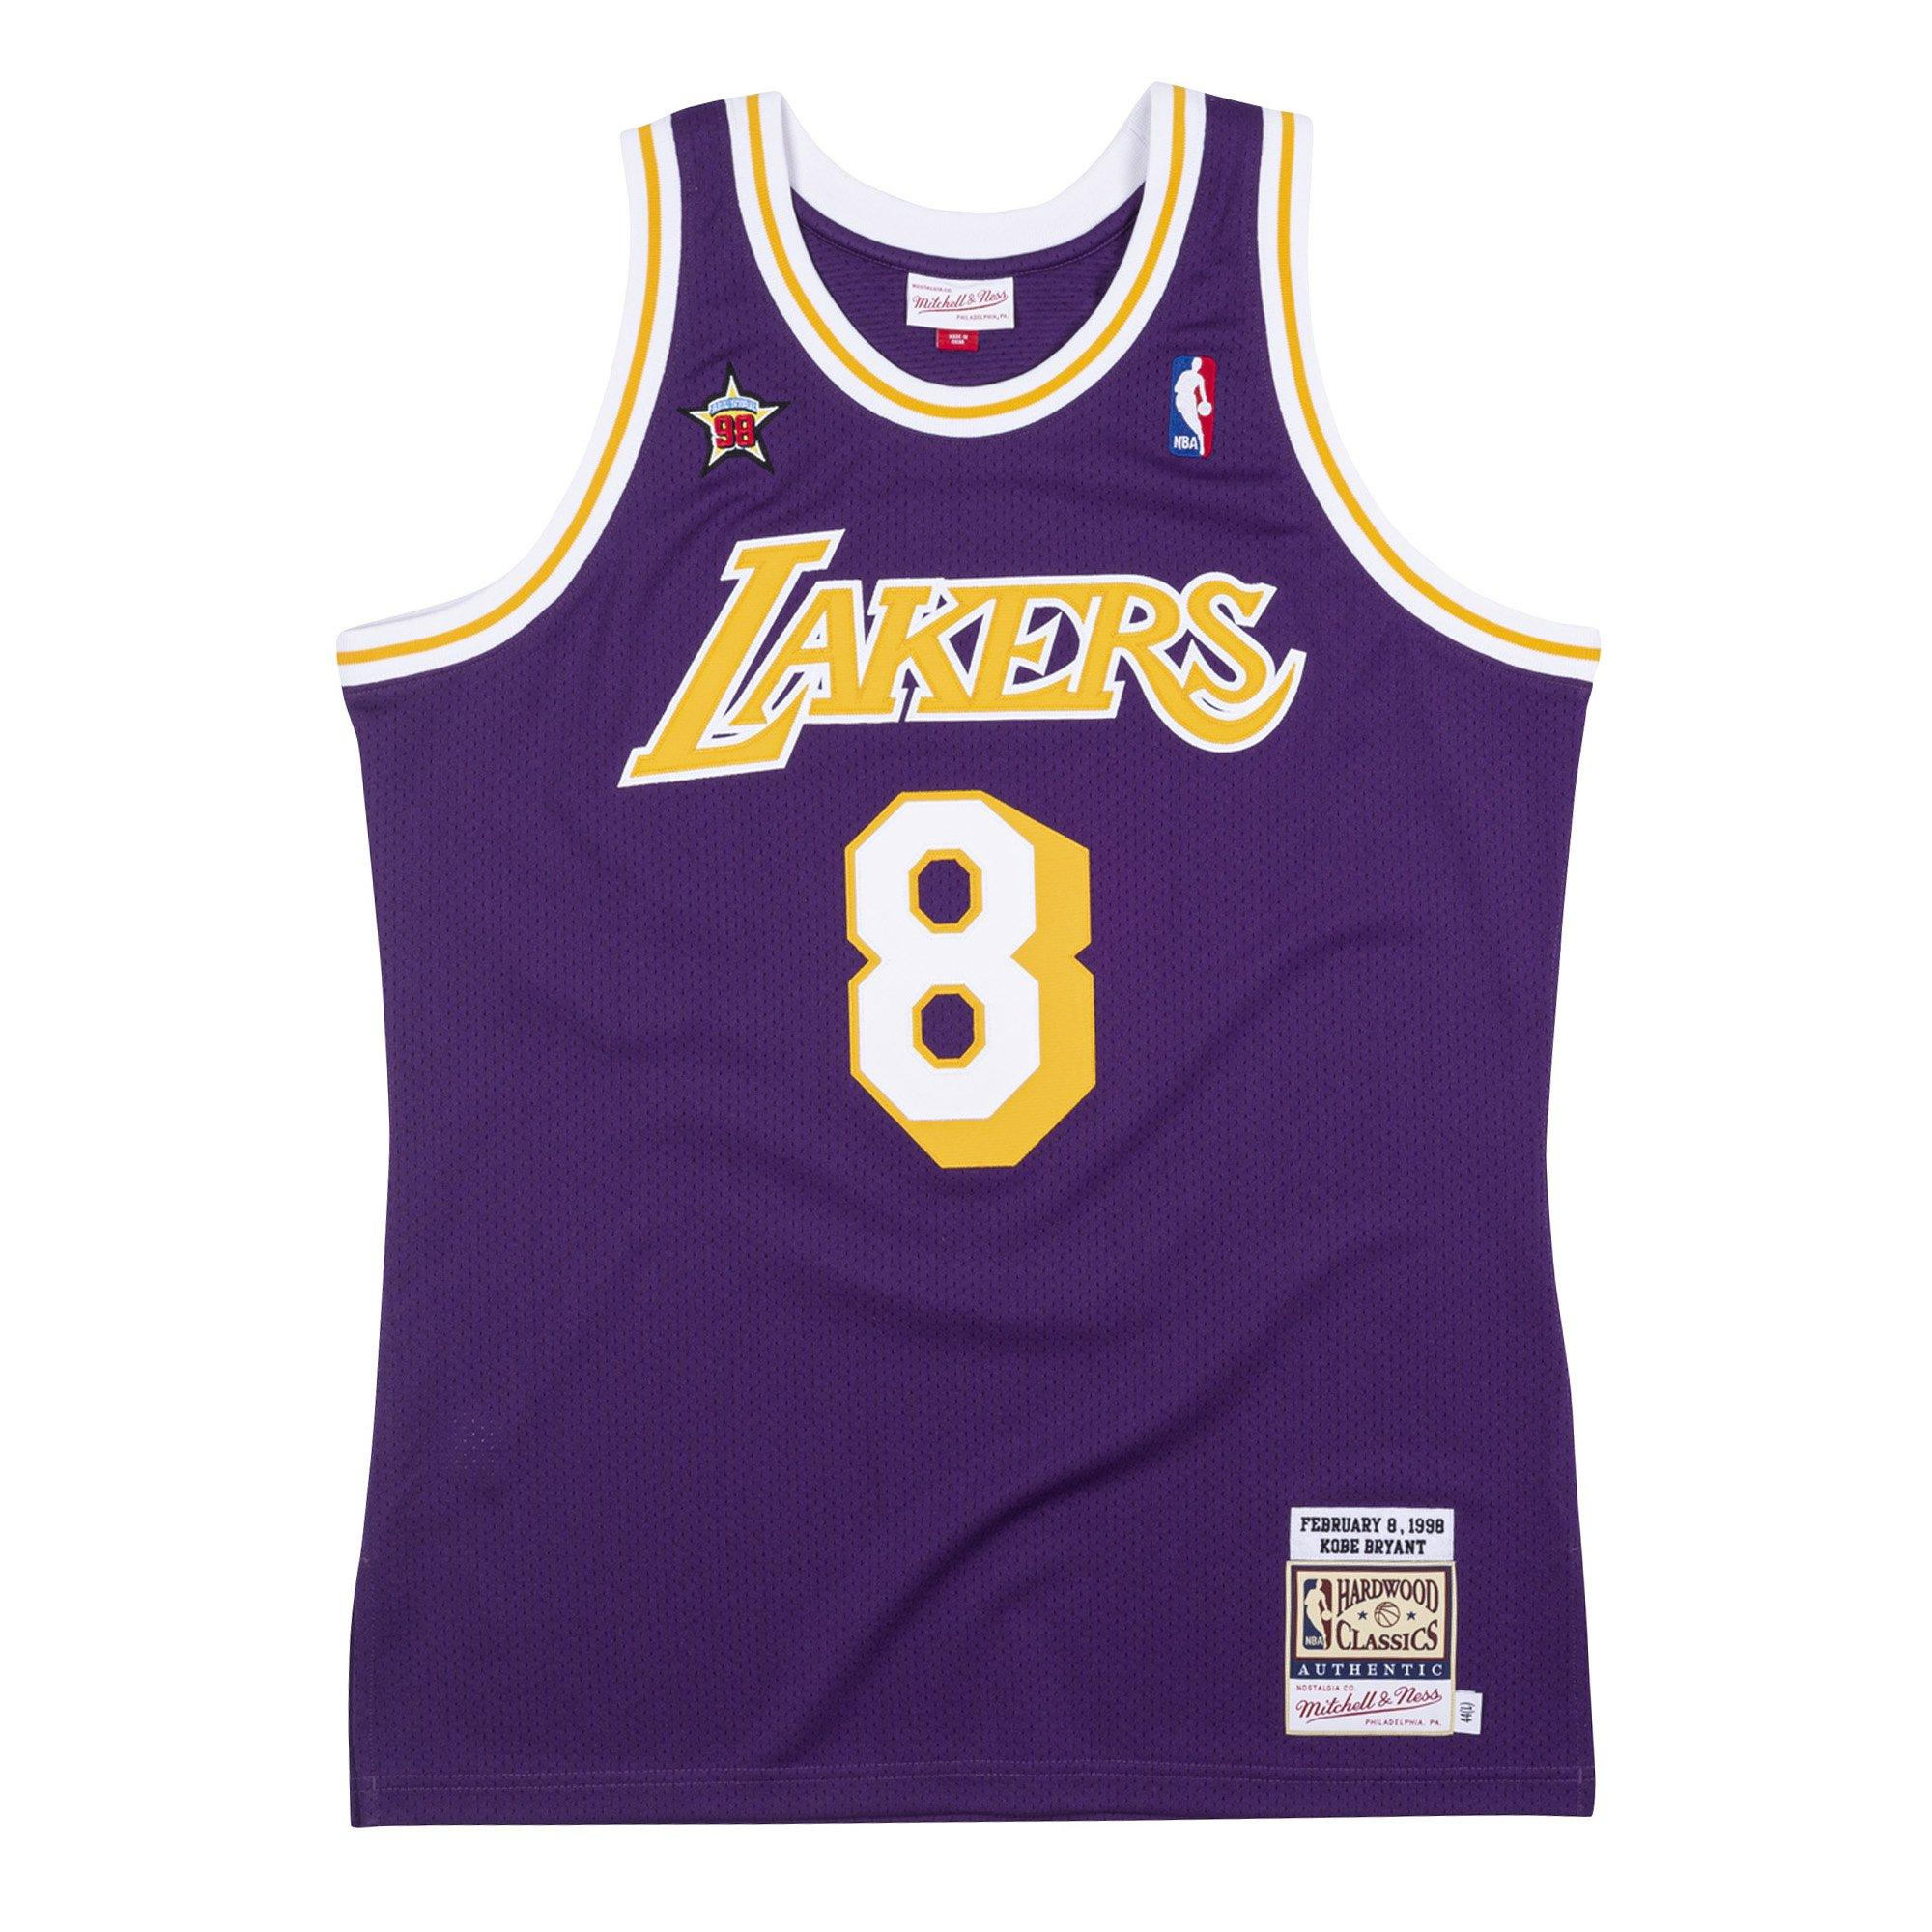 Mitchell & Ness Men's Los Angeles Lakers Kobe Bryant All Star Game West #8 Authentic Jersey